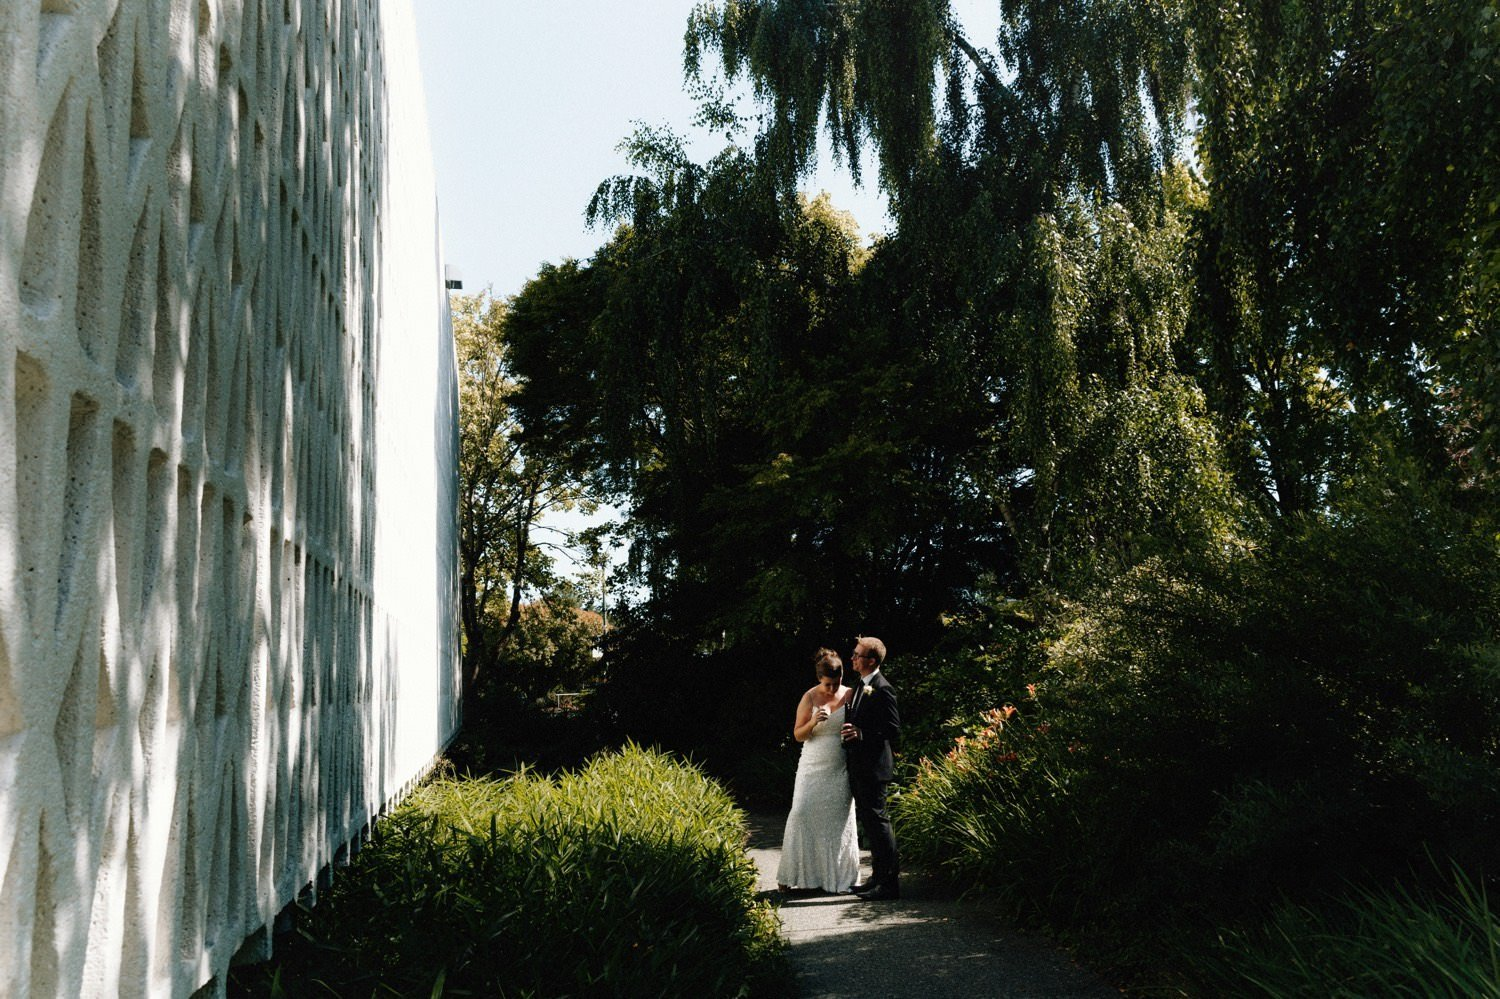 mov museum of vancouver wedding, affordable wedding venues